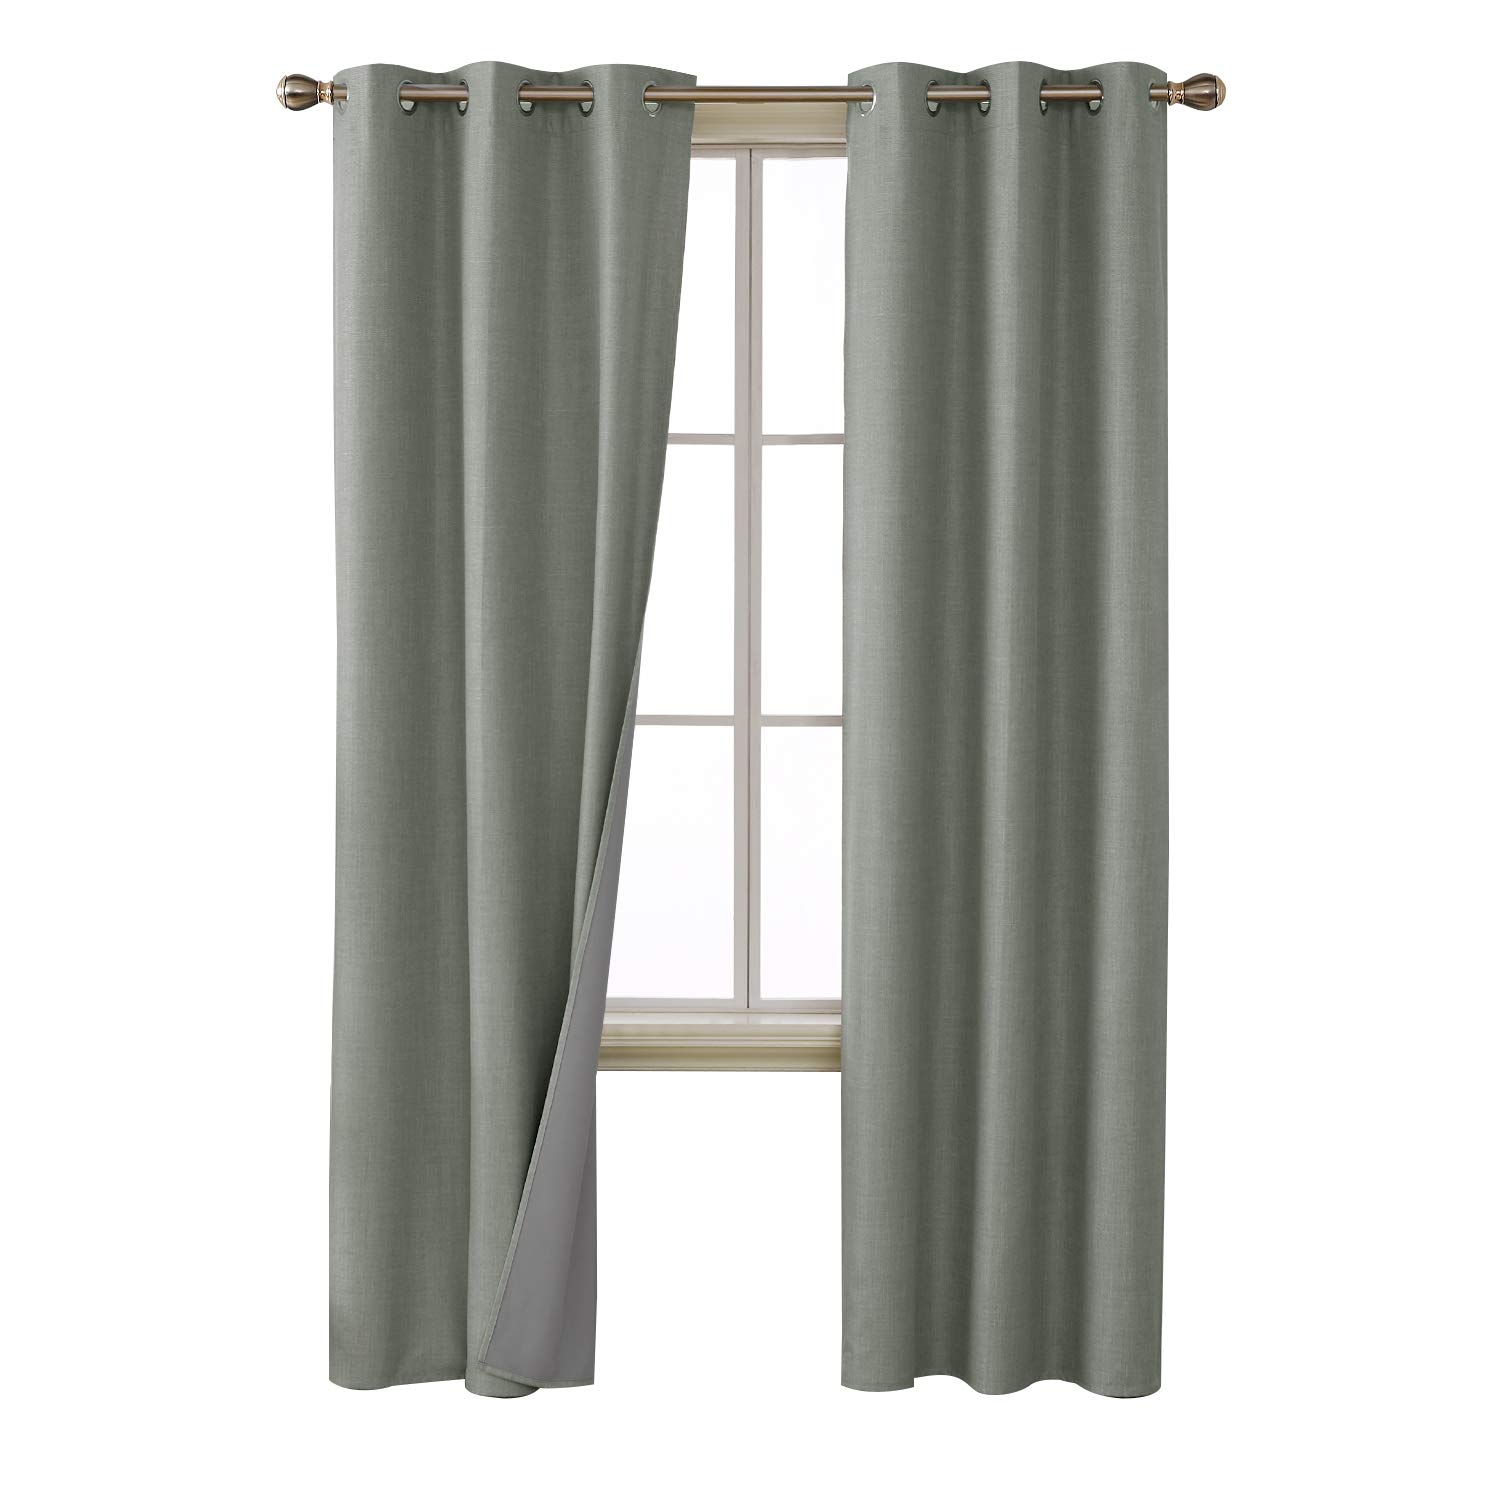 Deconovo 100 Percent Blackout Curtains with 3 Pass Energy Efficient Thermal Insulated Coating Faux Linen Room Darkening Grommet Curtains for Nursery 38 x 84 Inch Long Set of 2 Panels Light Gray